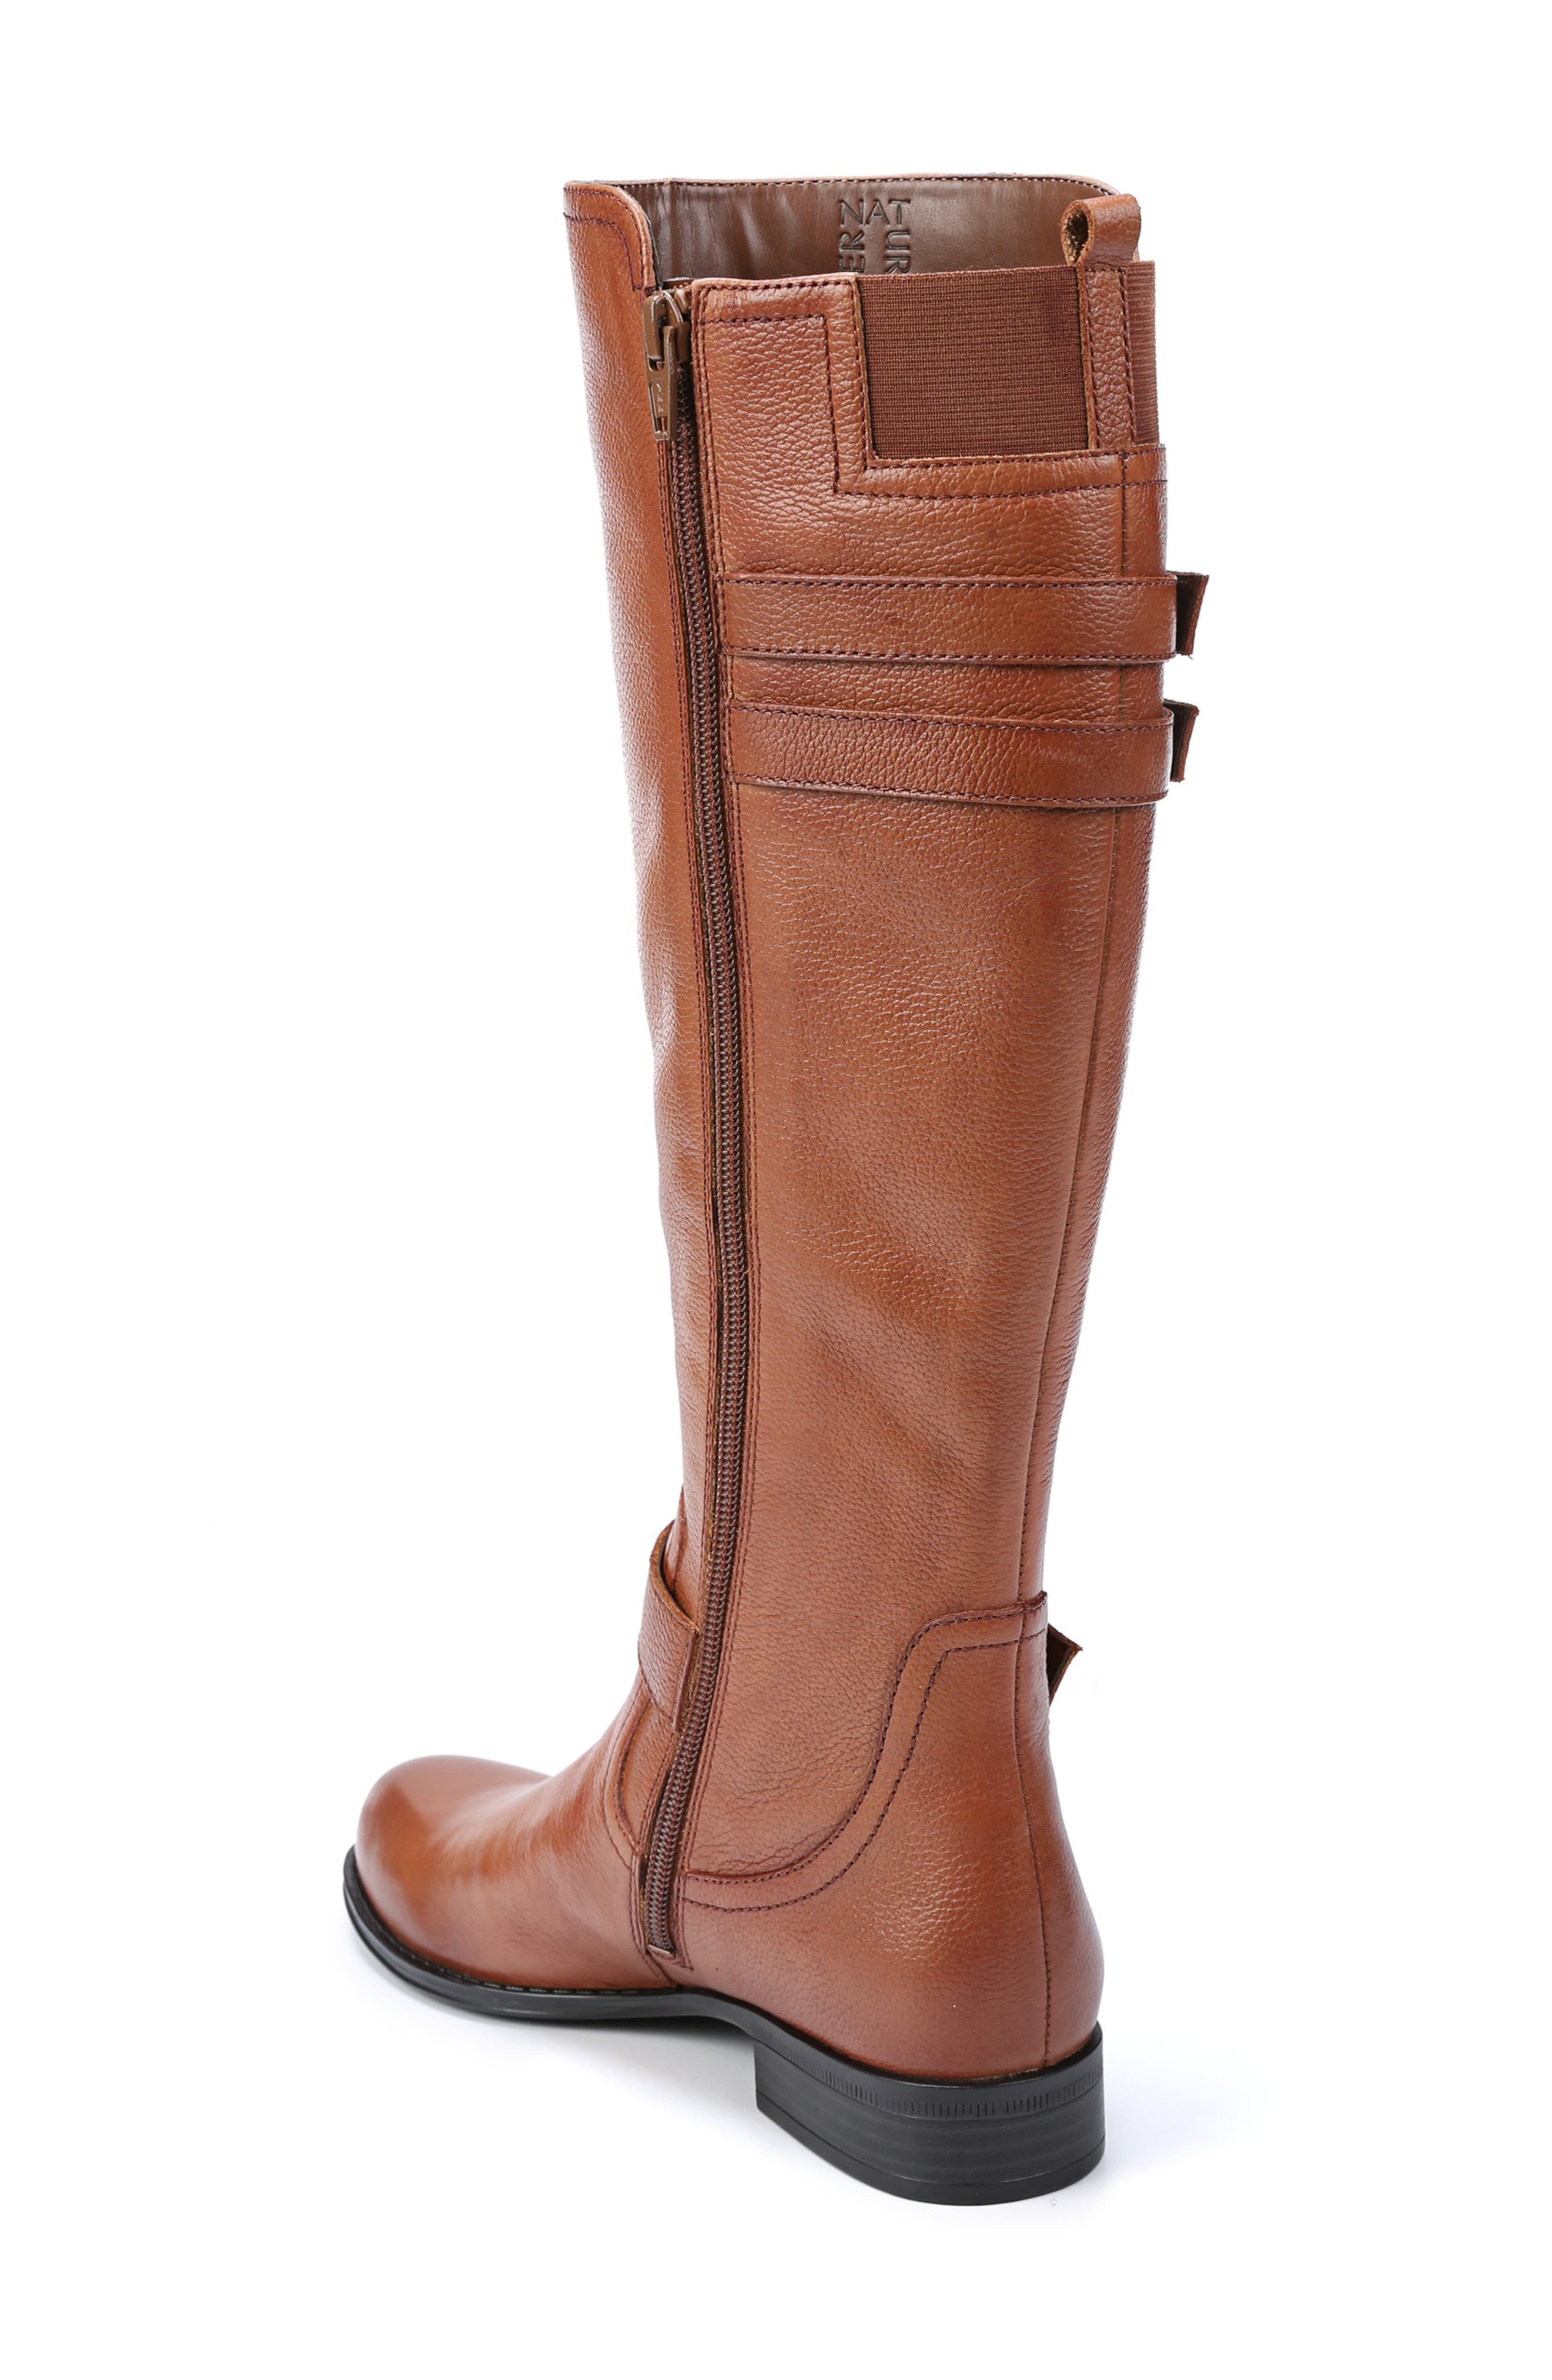 NATURALIZER, Jessie Knee High Riding Boot, Alternate thumbnail 2, color, BANANA BREAD LEATHER